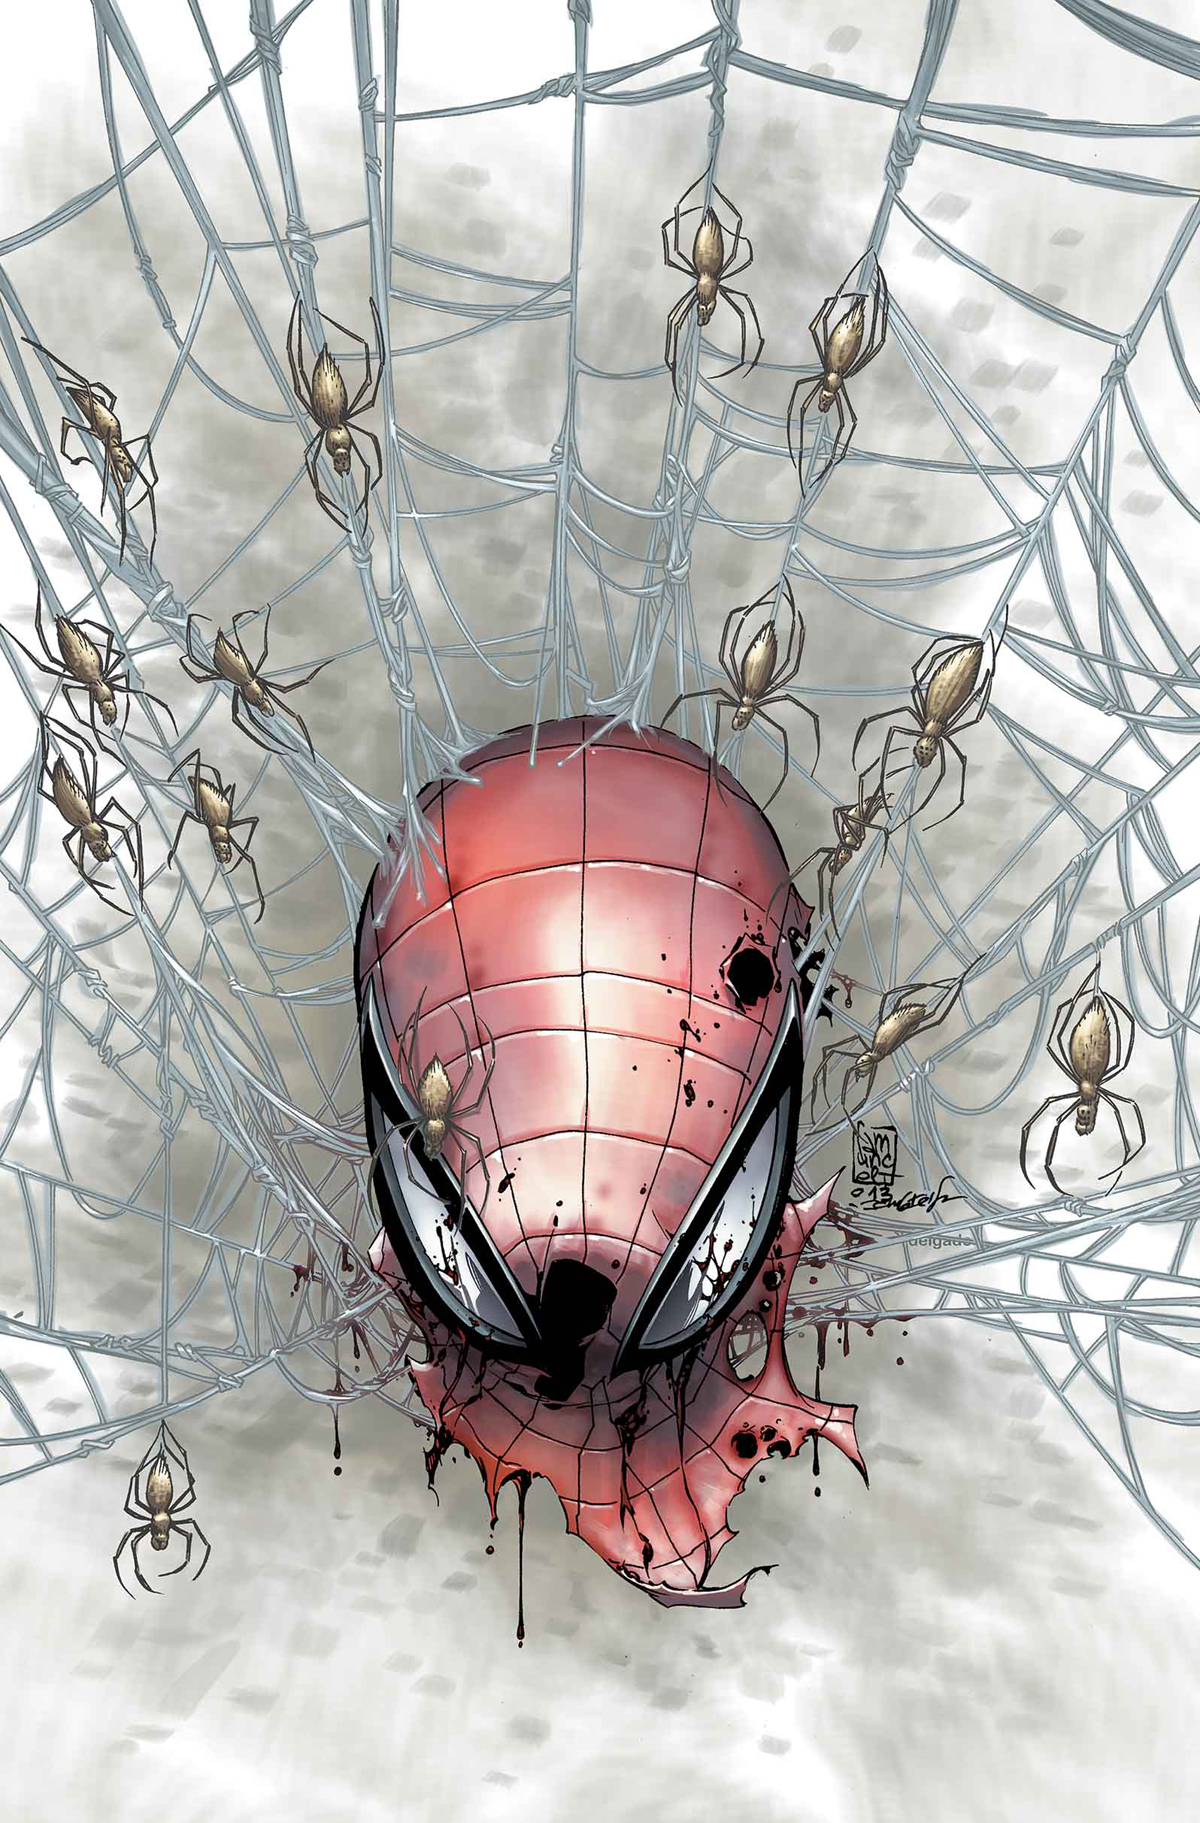 SUPERIOR SPIDER-MAN #30 ANMN